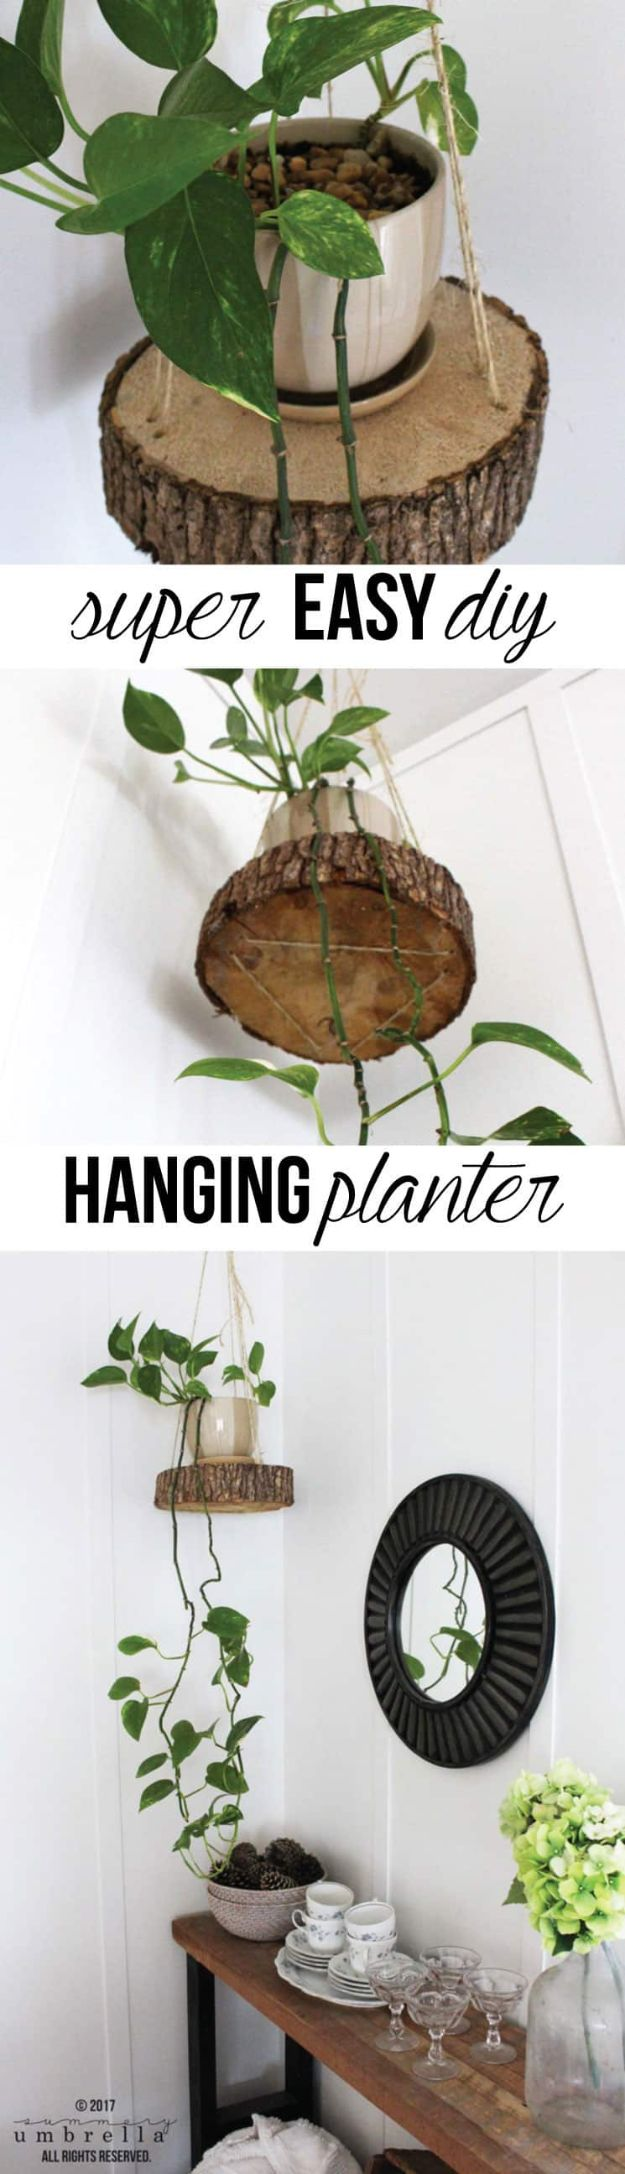 DIY Plant Hangers - Easy DIY Hanging Planter Using A Wood Slice And Rope - Cute and Easy Home Decor Ideas for Plants - How To Make Planters, Hanging Pot Holders, Wire, Rope and Baskets - Quick DIY Gifts Ideas, Macrame Plant Hanger #gardening #plants #diyideas